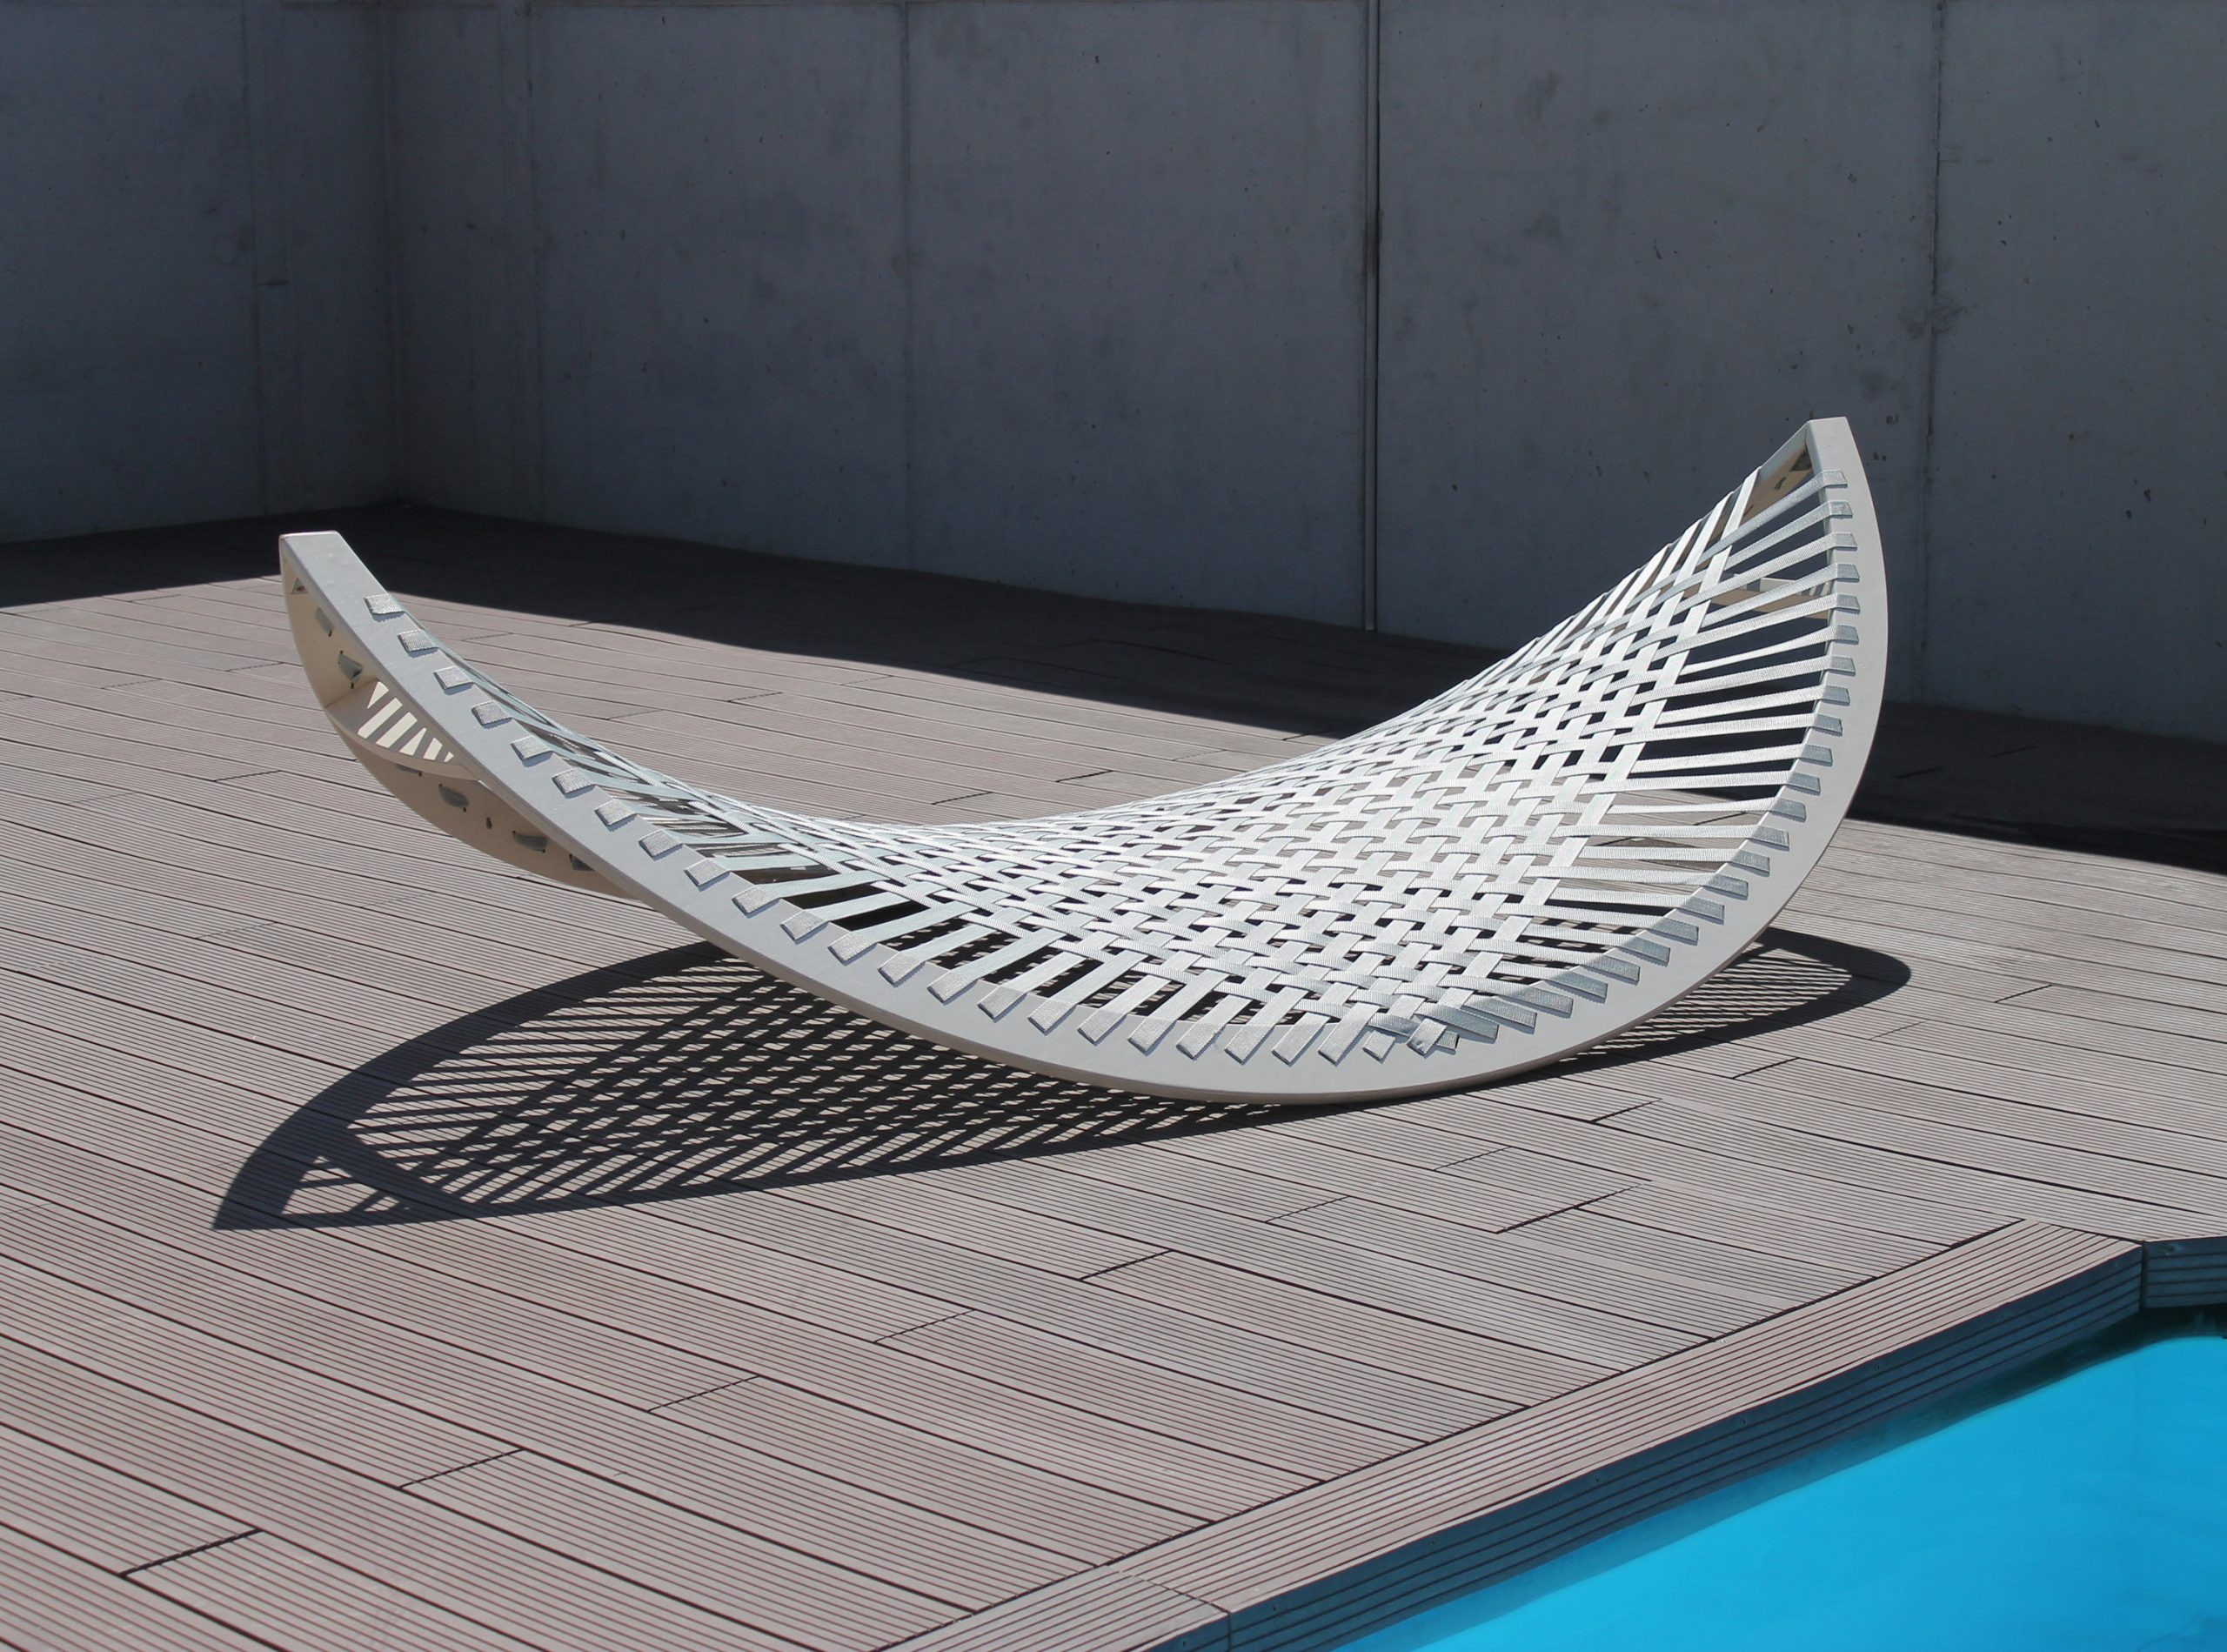 Panama Banana Lounger by Agota Rimsaite for Aggy